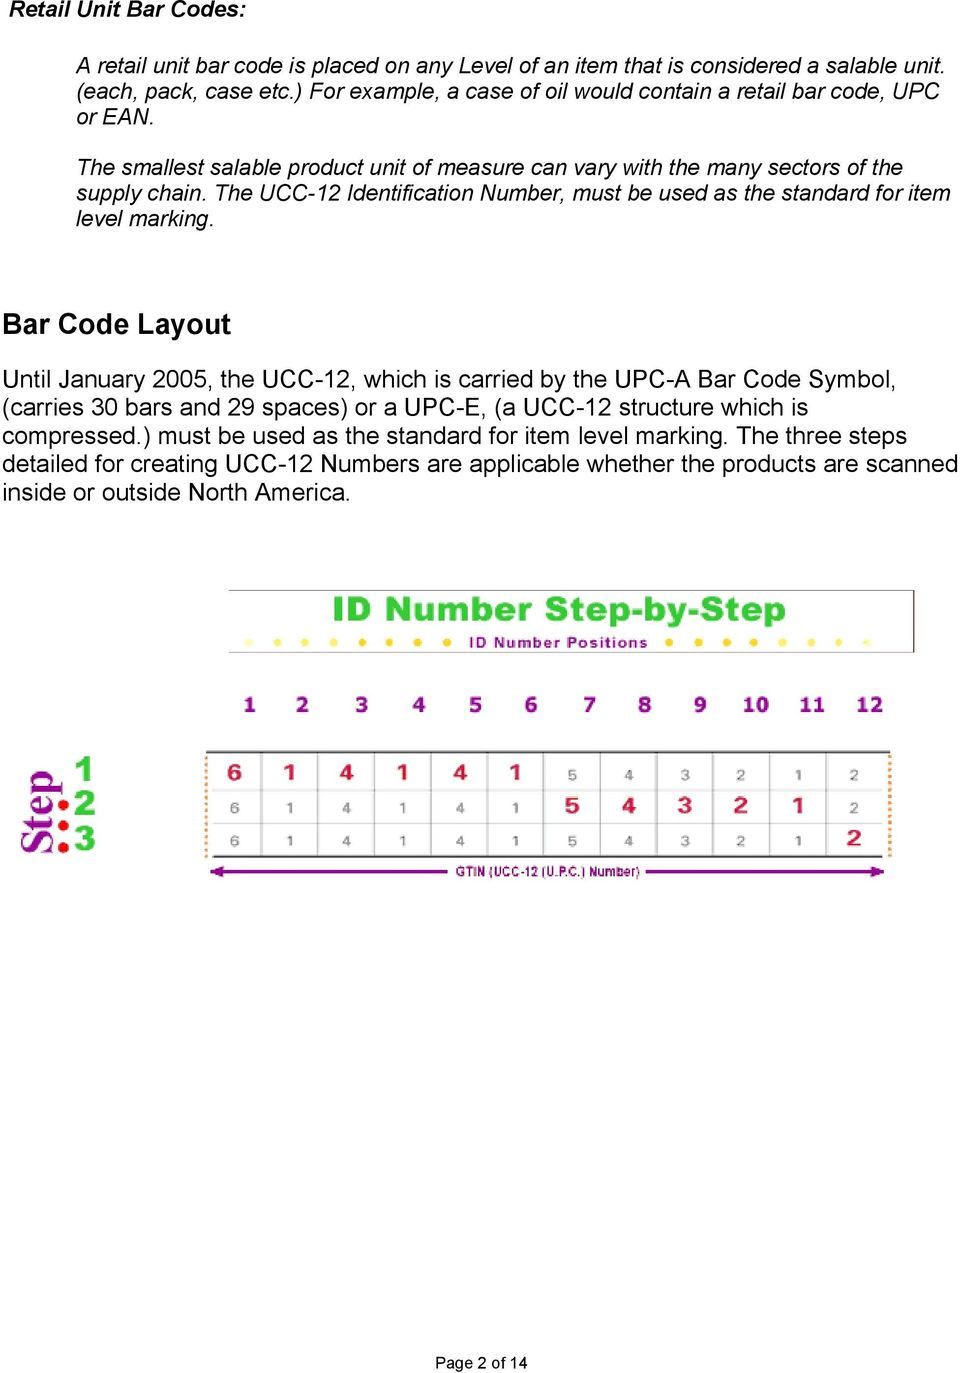 The UCC-12 Identification Number, must be used as the standard for item level marking.